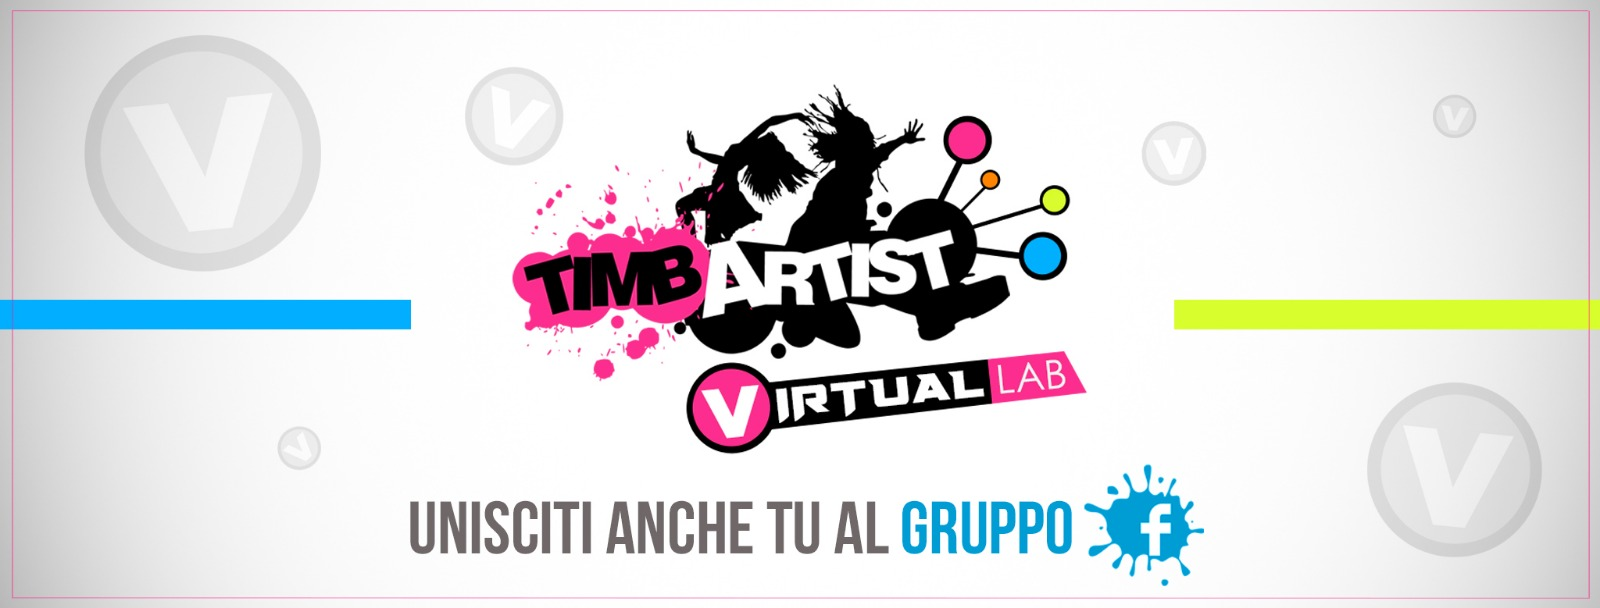 Copertina VIRTUAL LAB